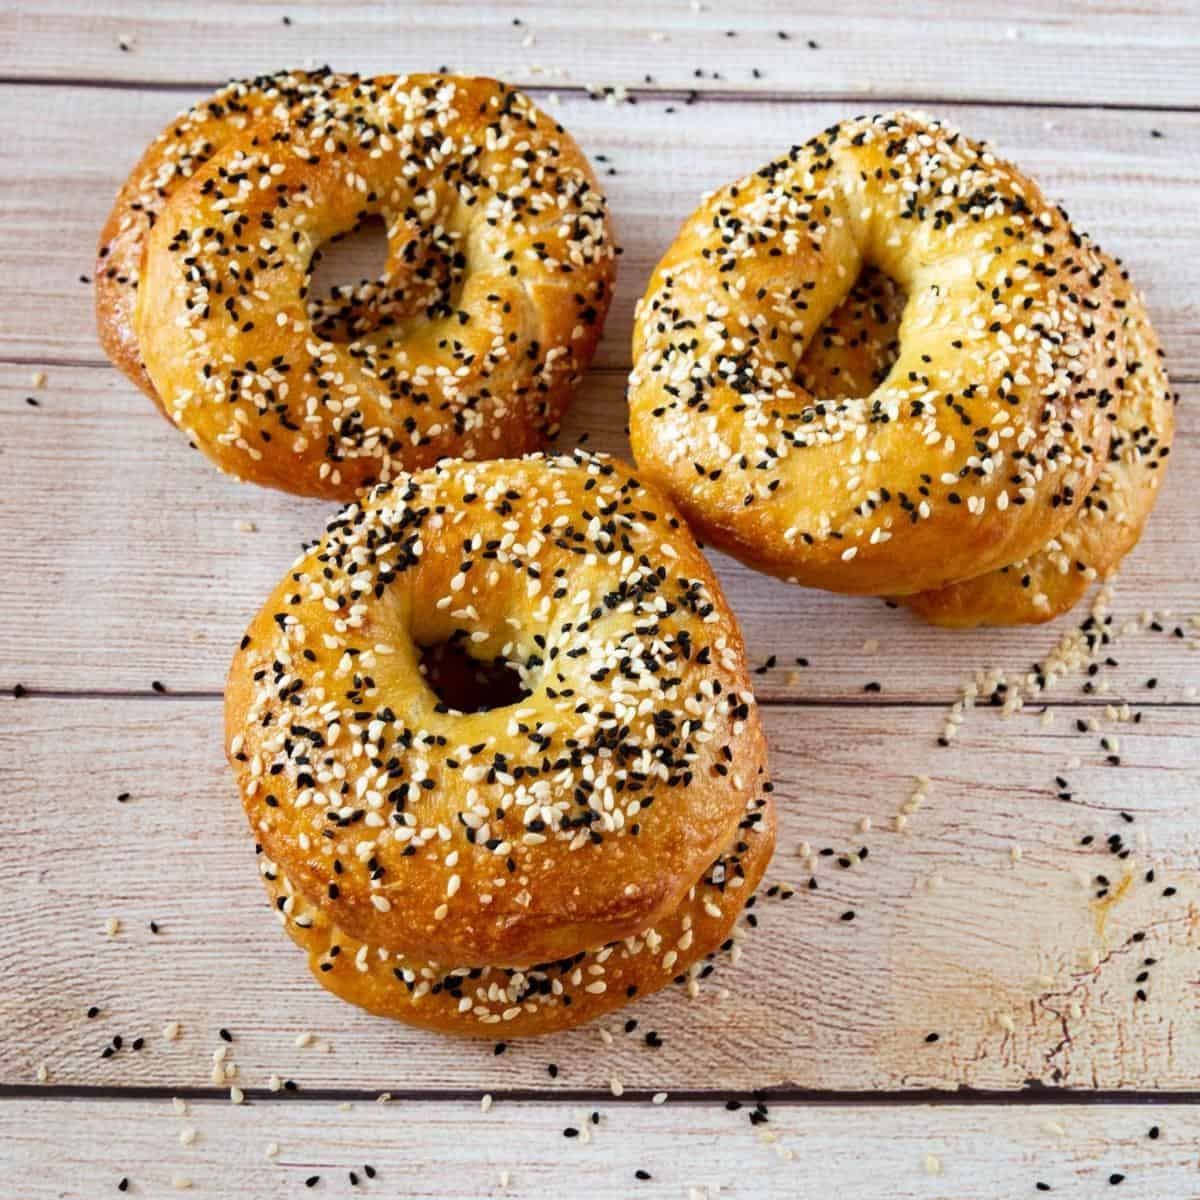 Bagels on a wooden table.